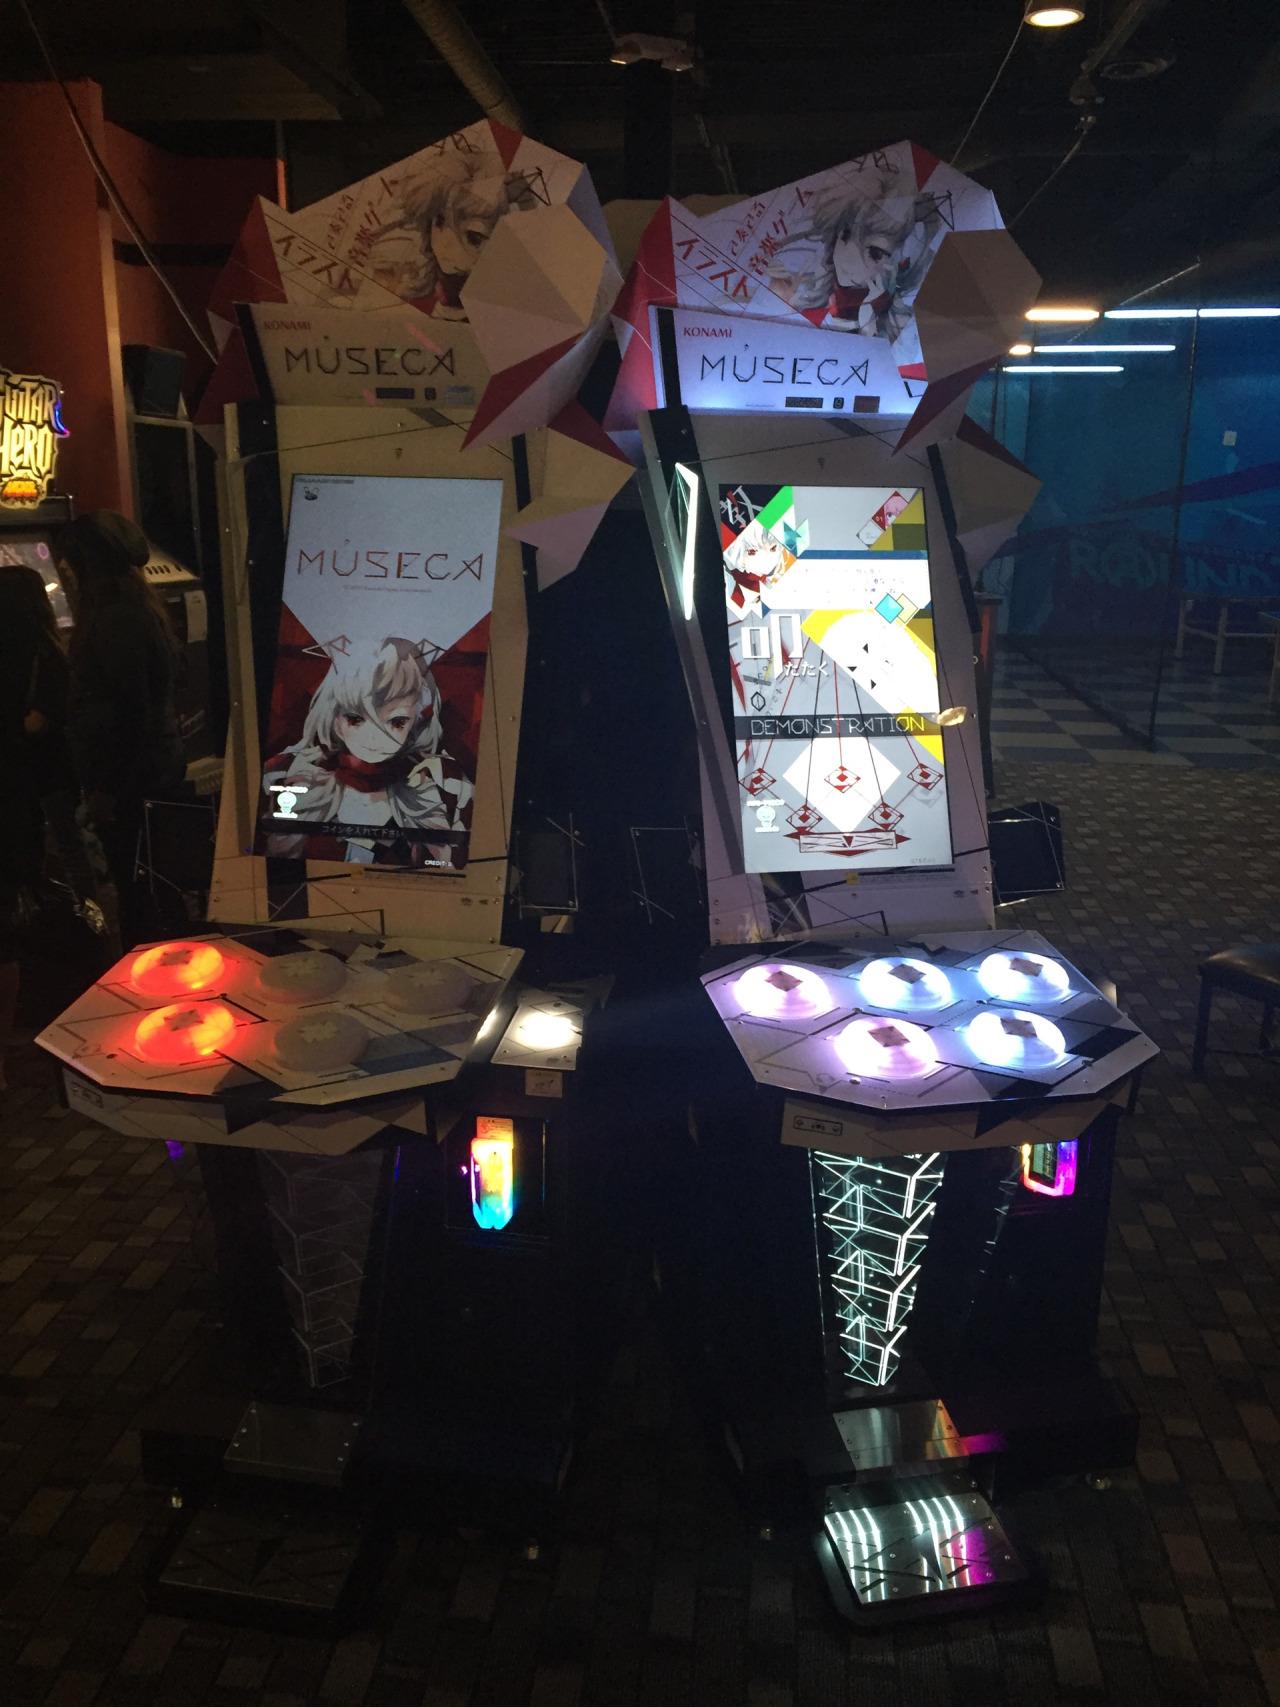 Museca times Dos  - Arcade Locations - Picture Gallery - ZIv